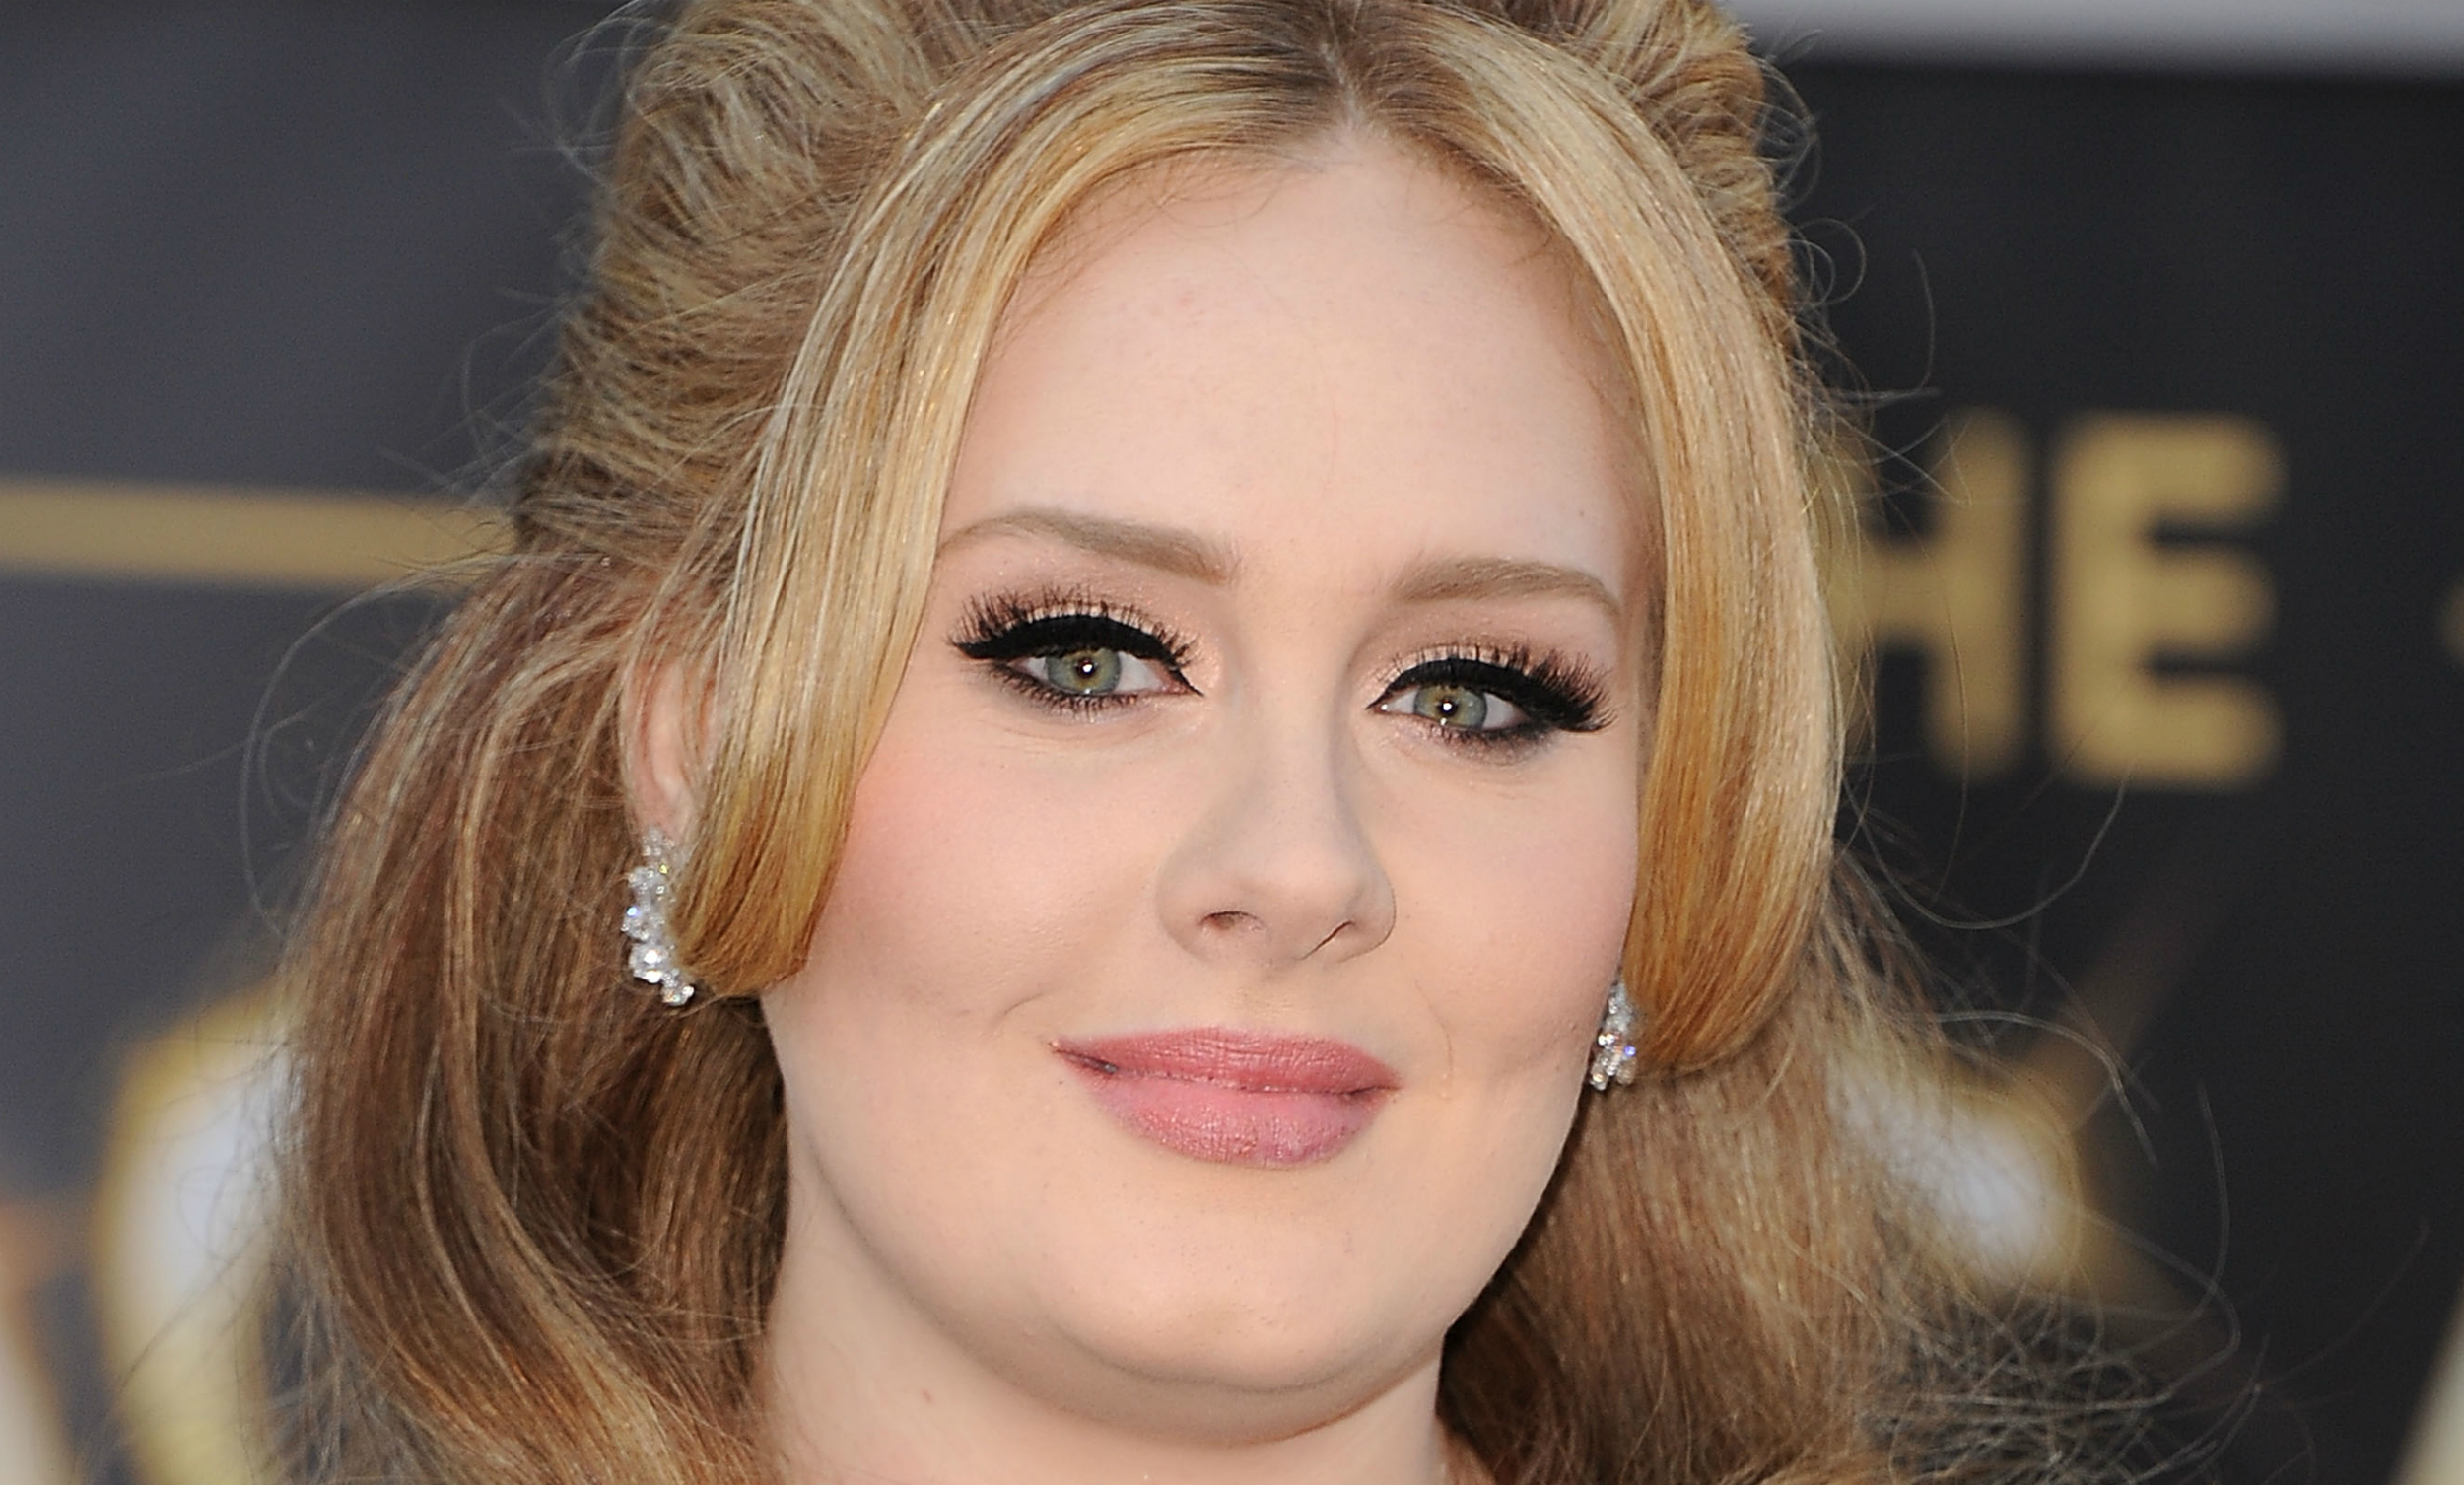 'Hello' From Adele's Makeup Artist, Who Filmed An Eyeliner